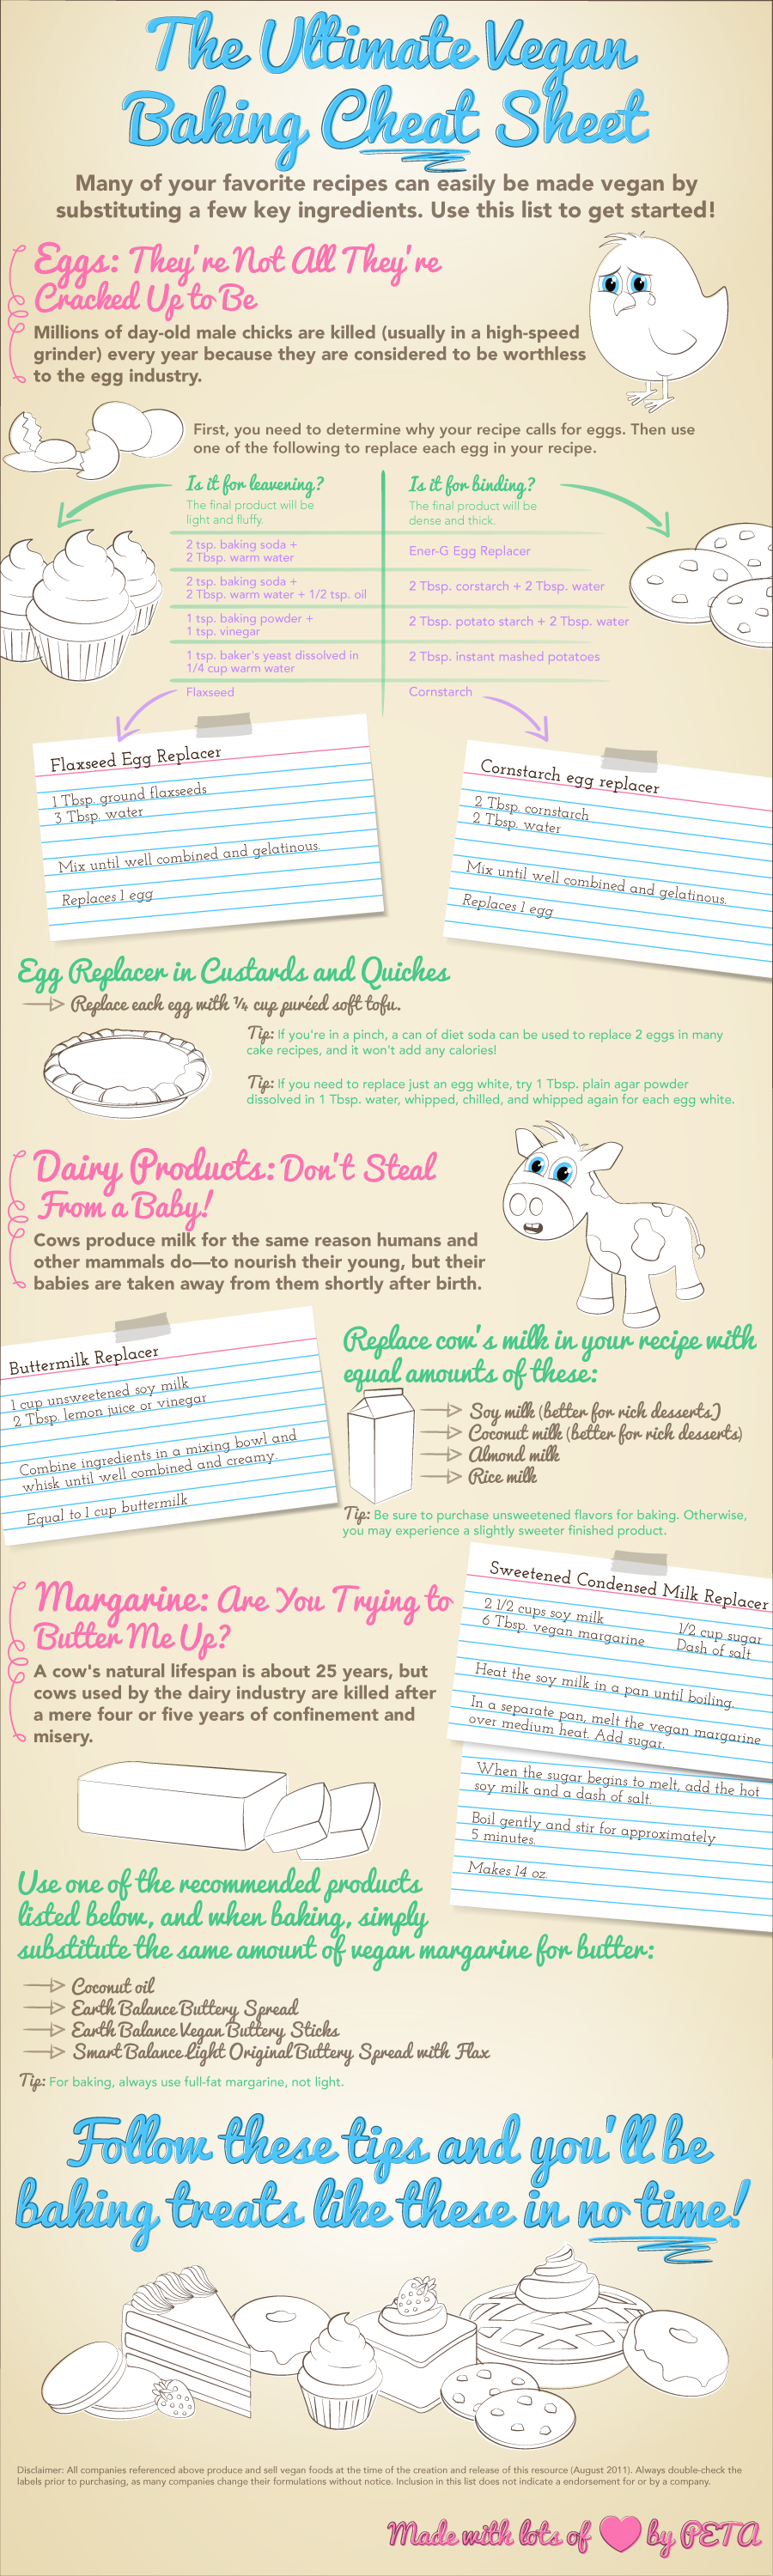 infographicVeganBaking_PETA_REVISED72